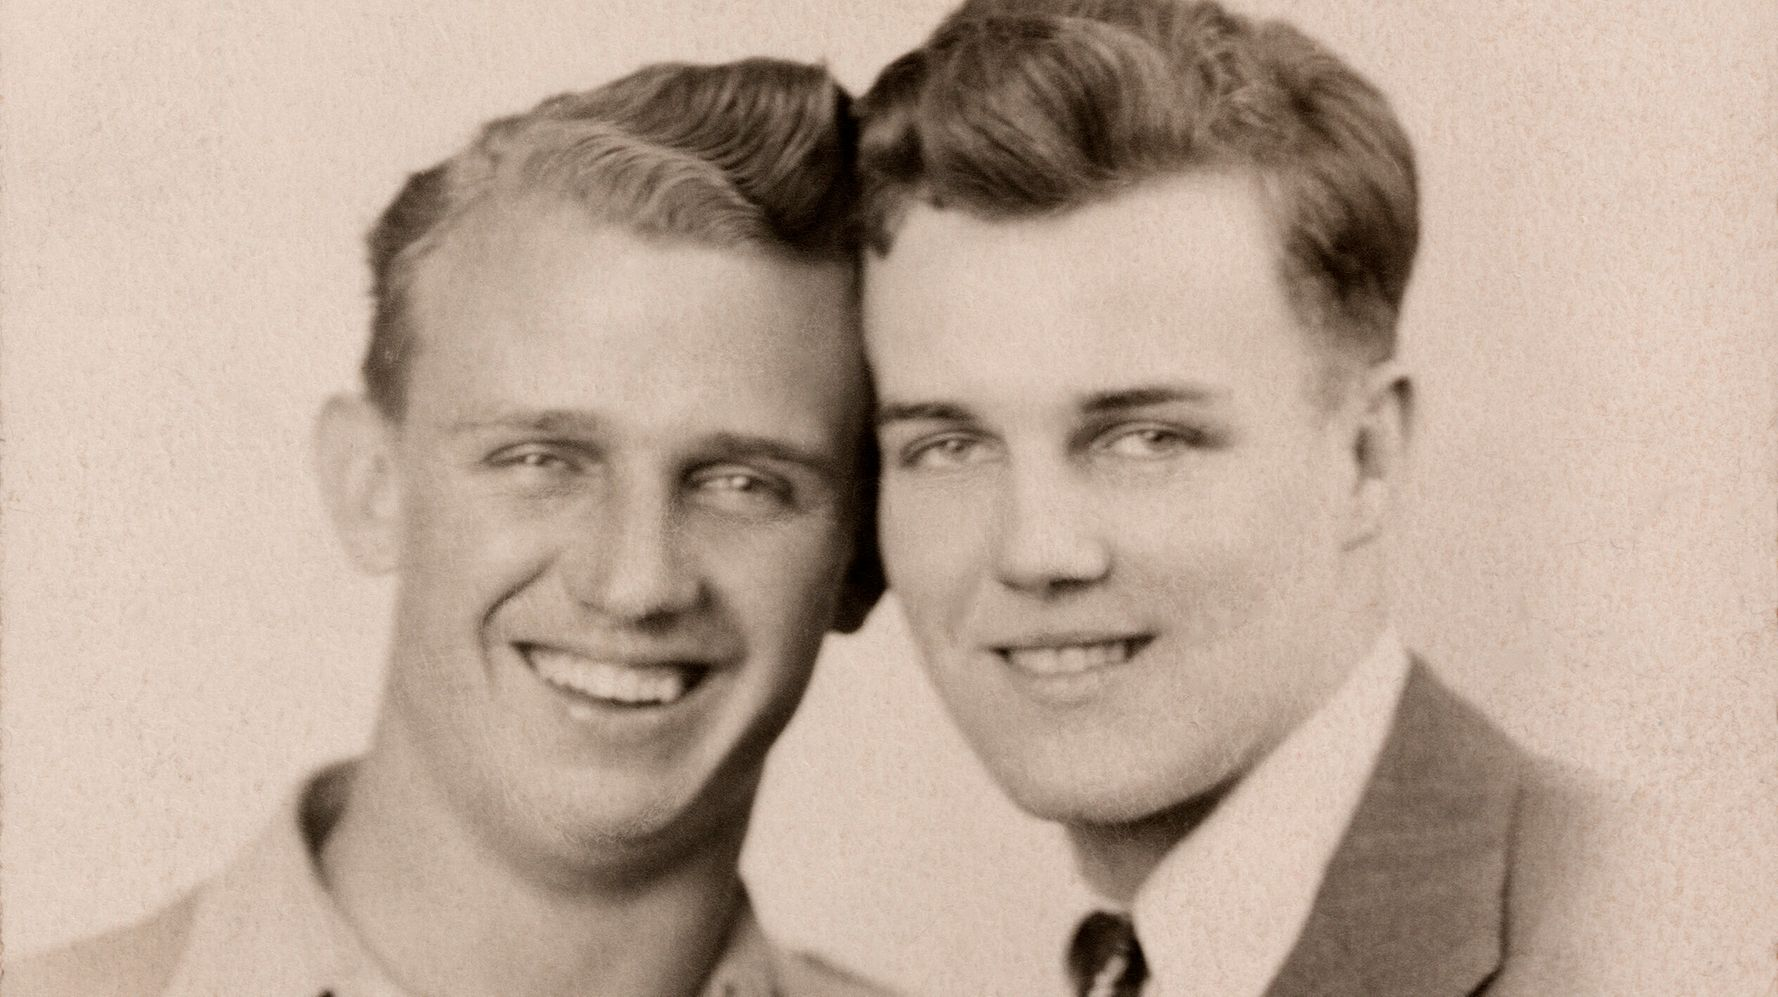 New Book Showcases 100 Years Of Male Intimacy Before Gay Relationships Were Legal